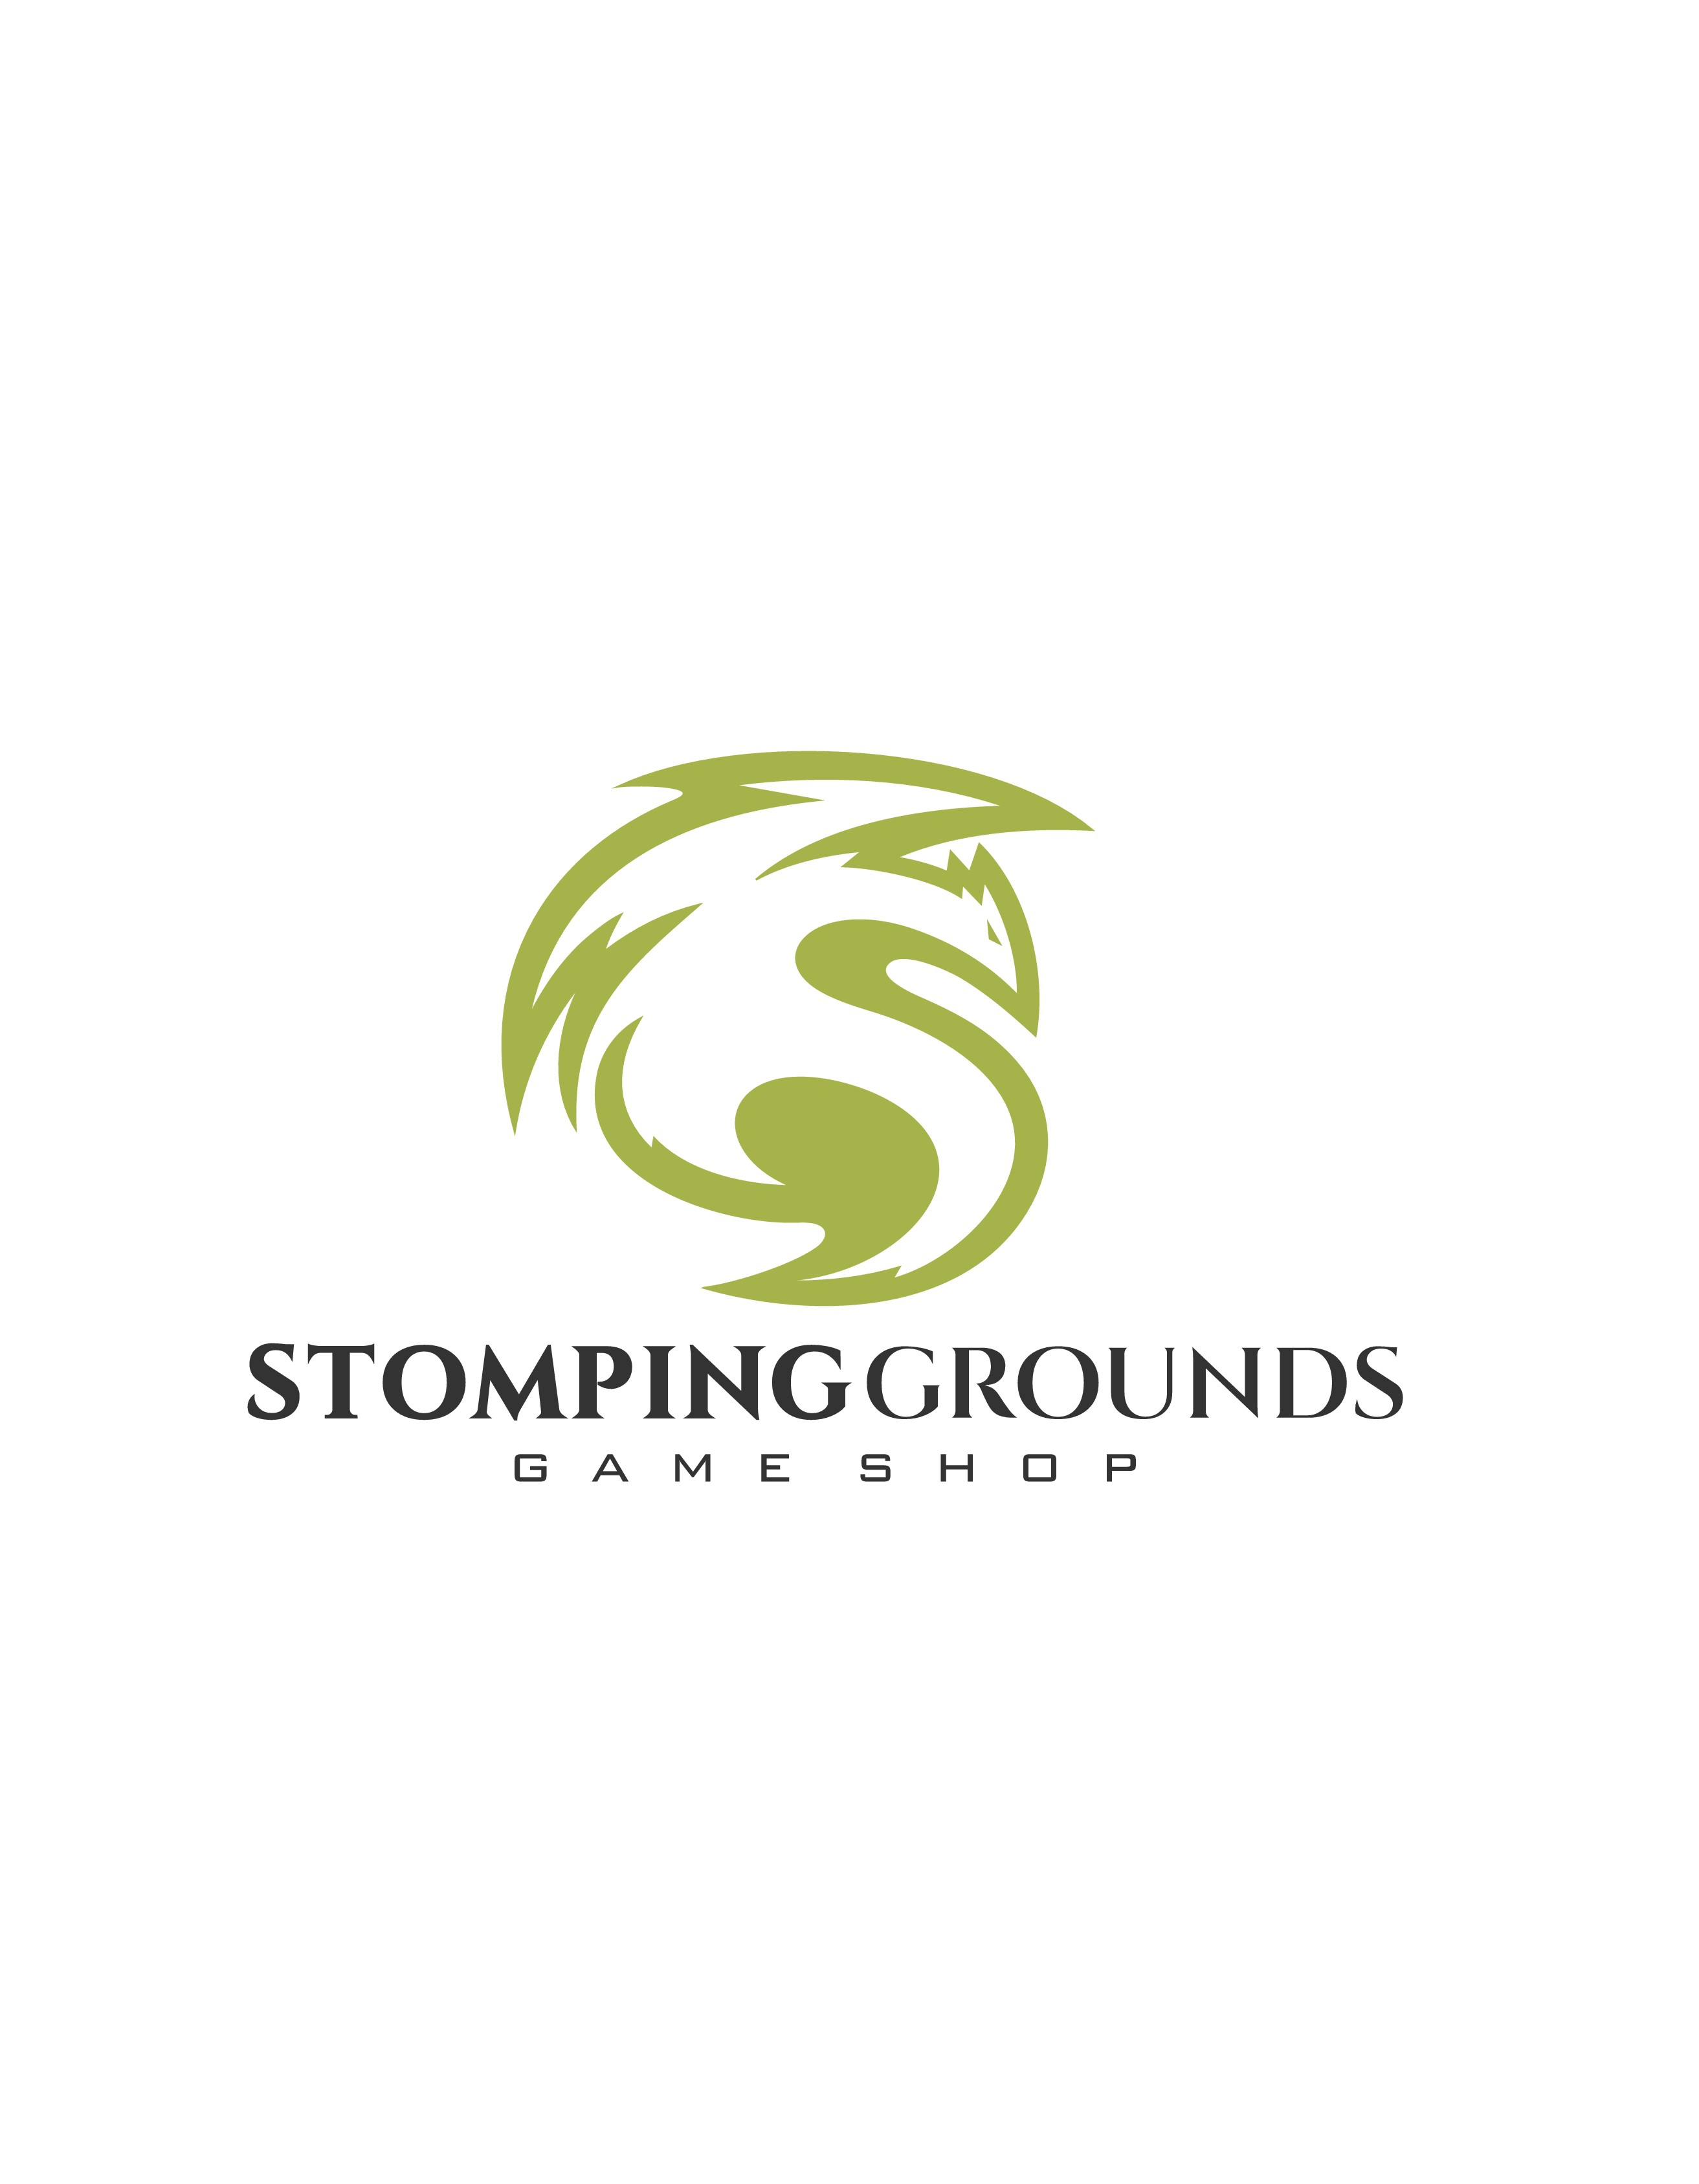 Create a Cool Logo for Stomping Grounds.